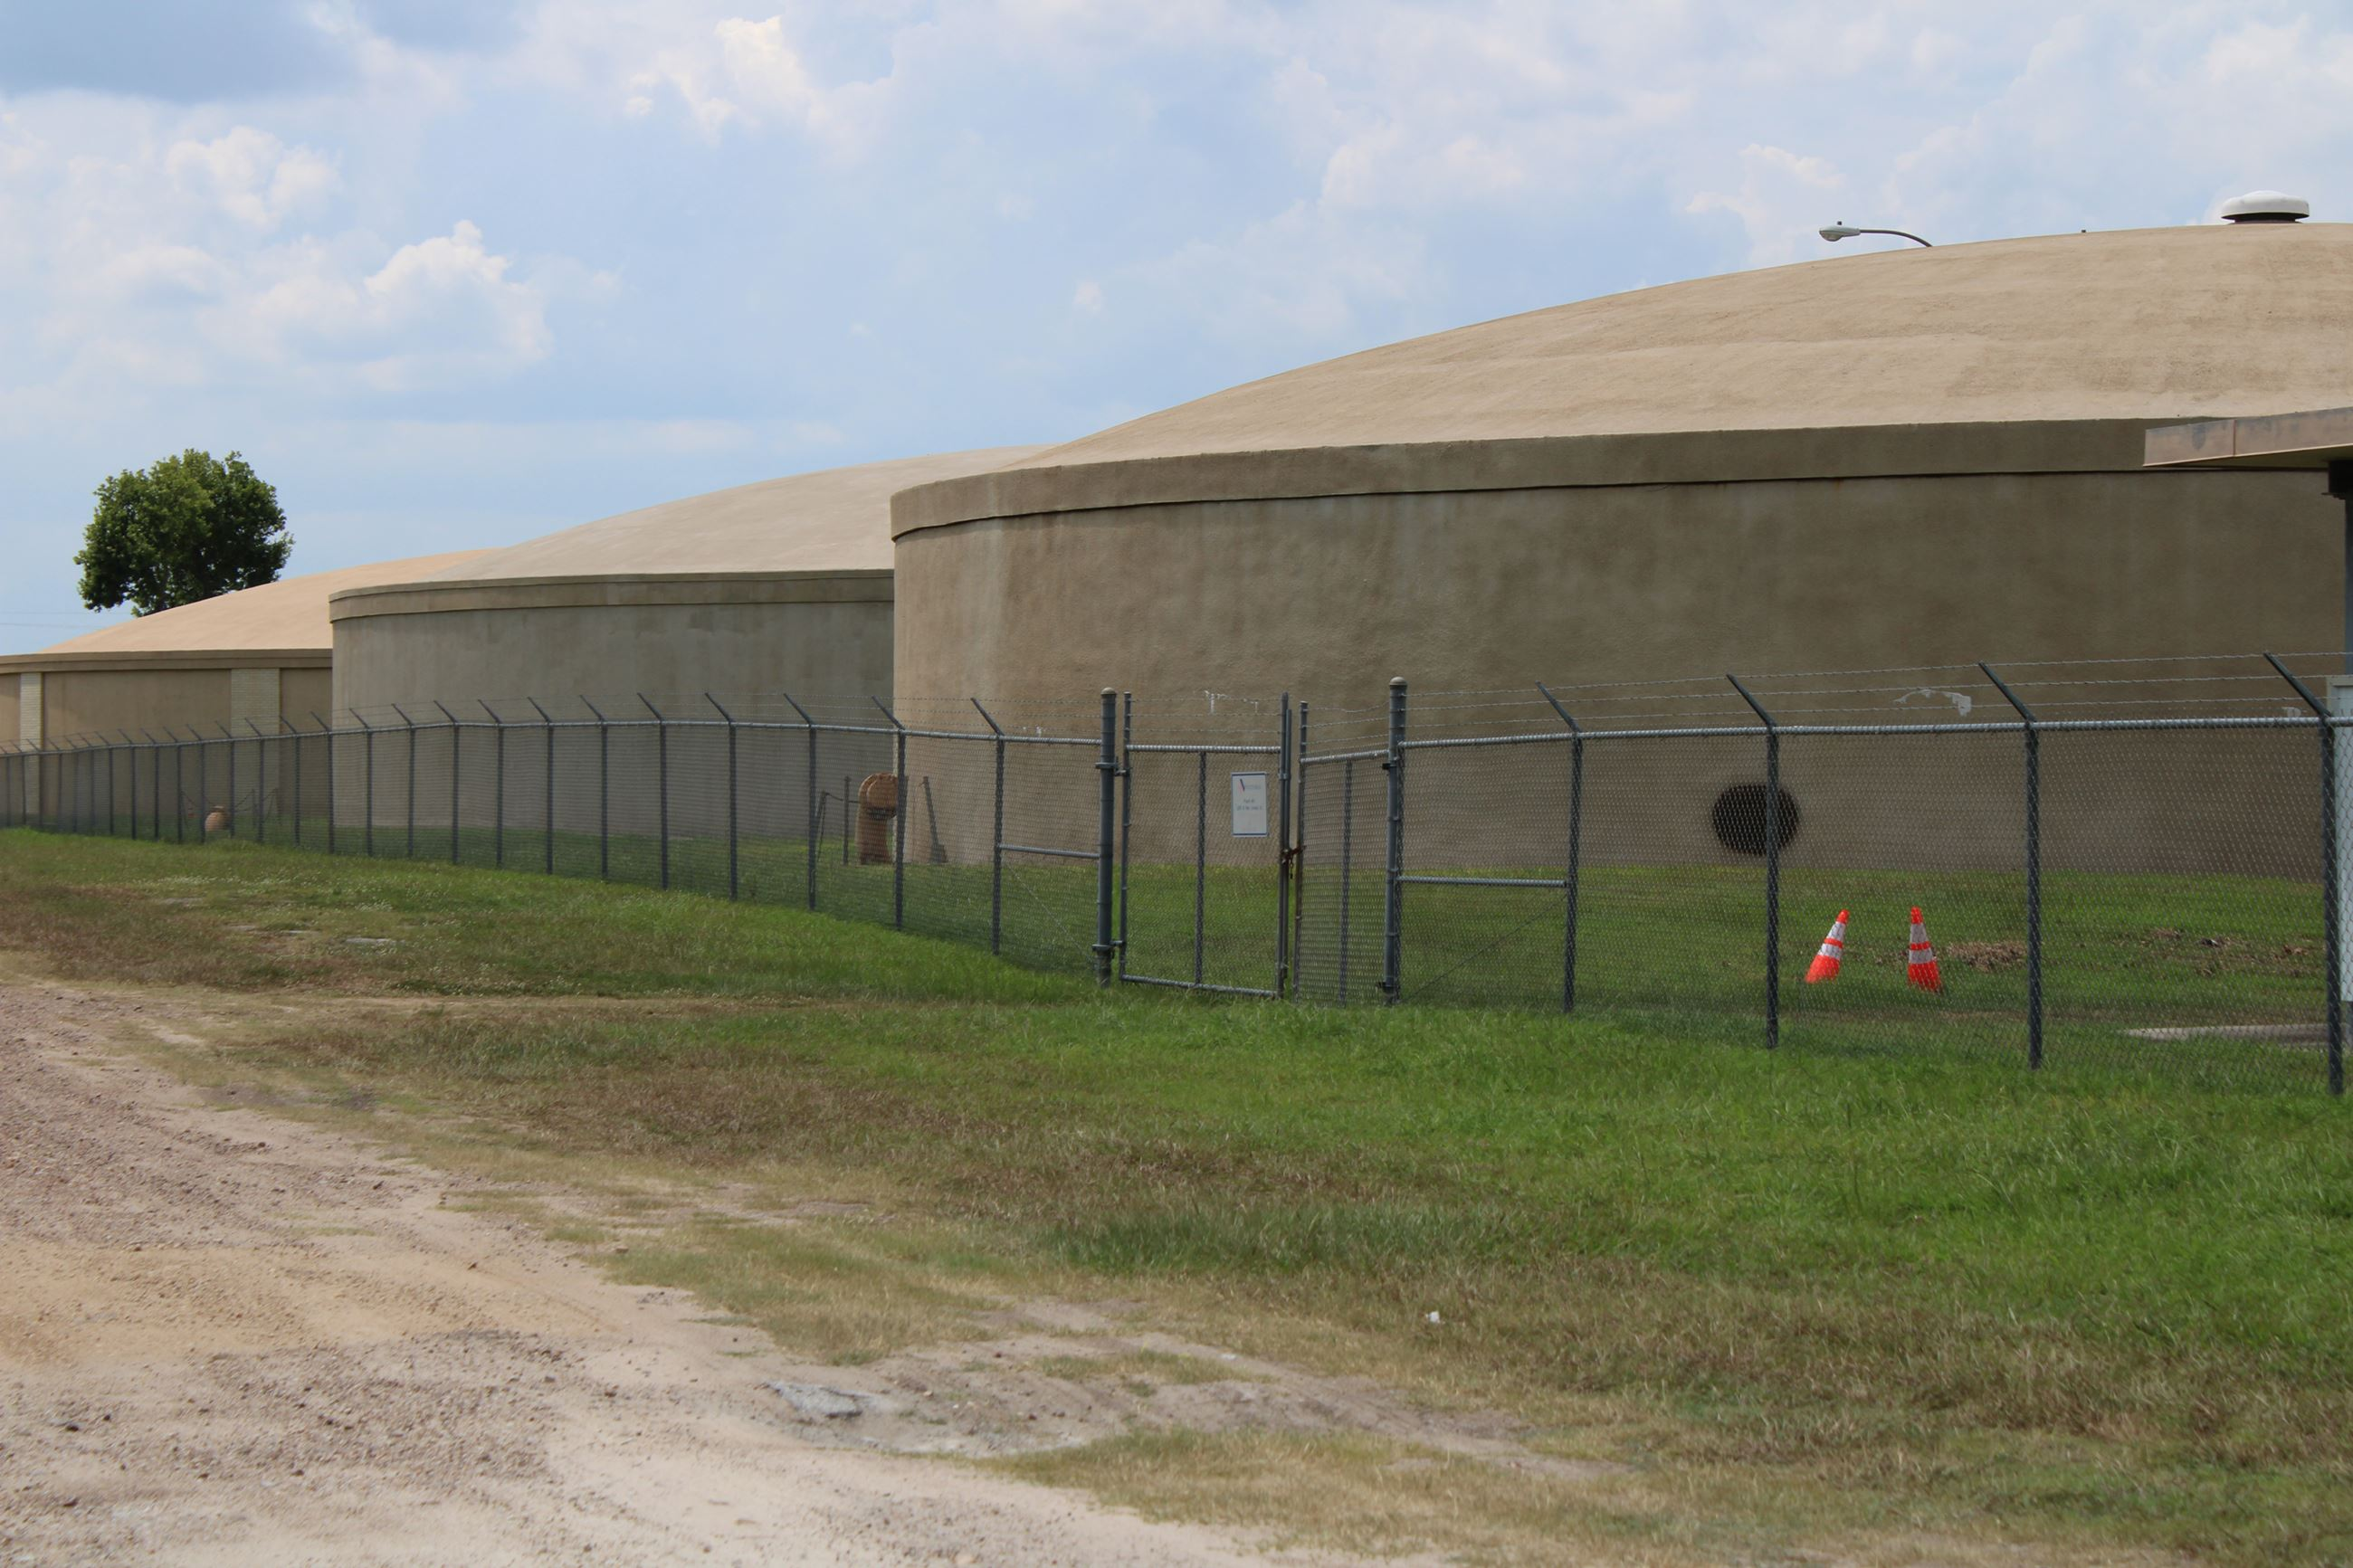 Clean, pale-colored water tanks